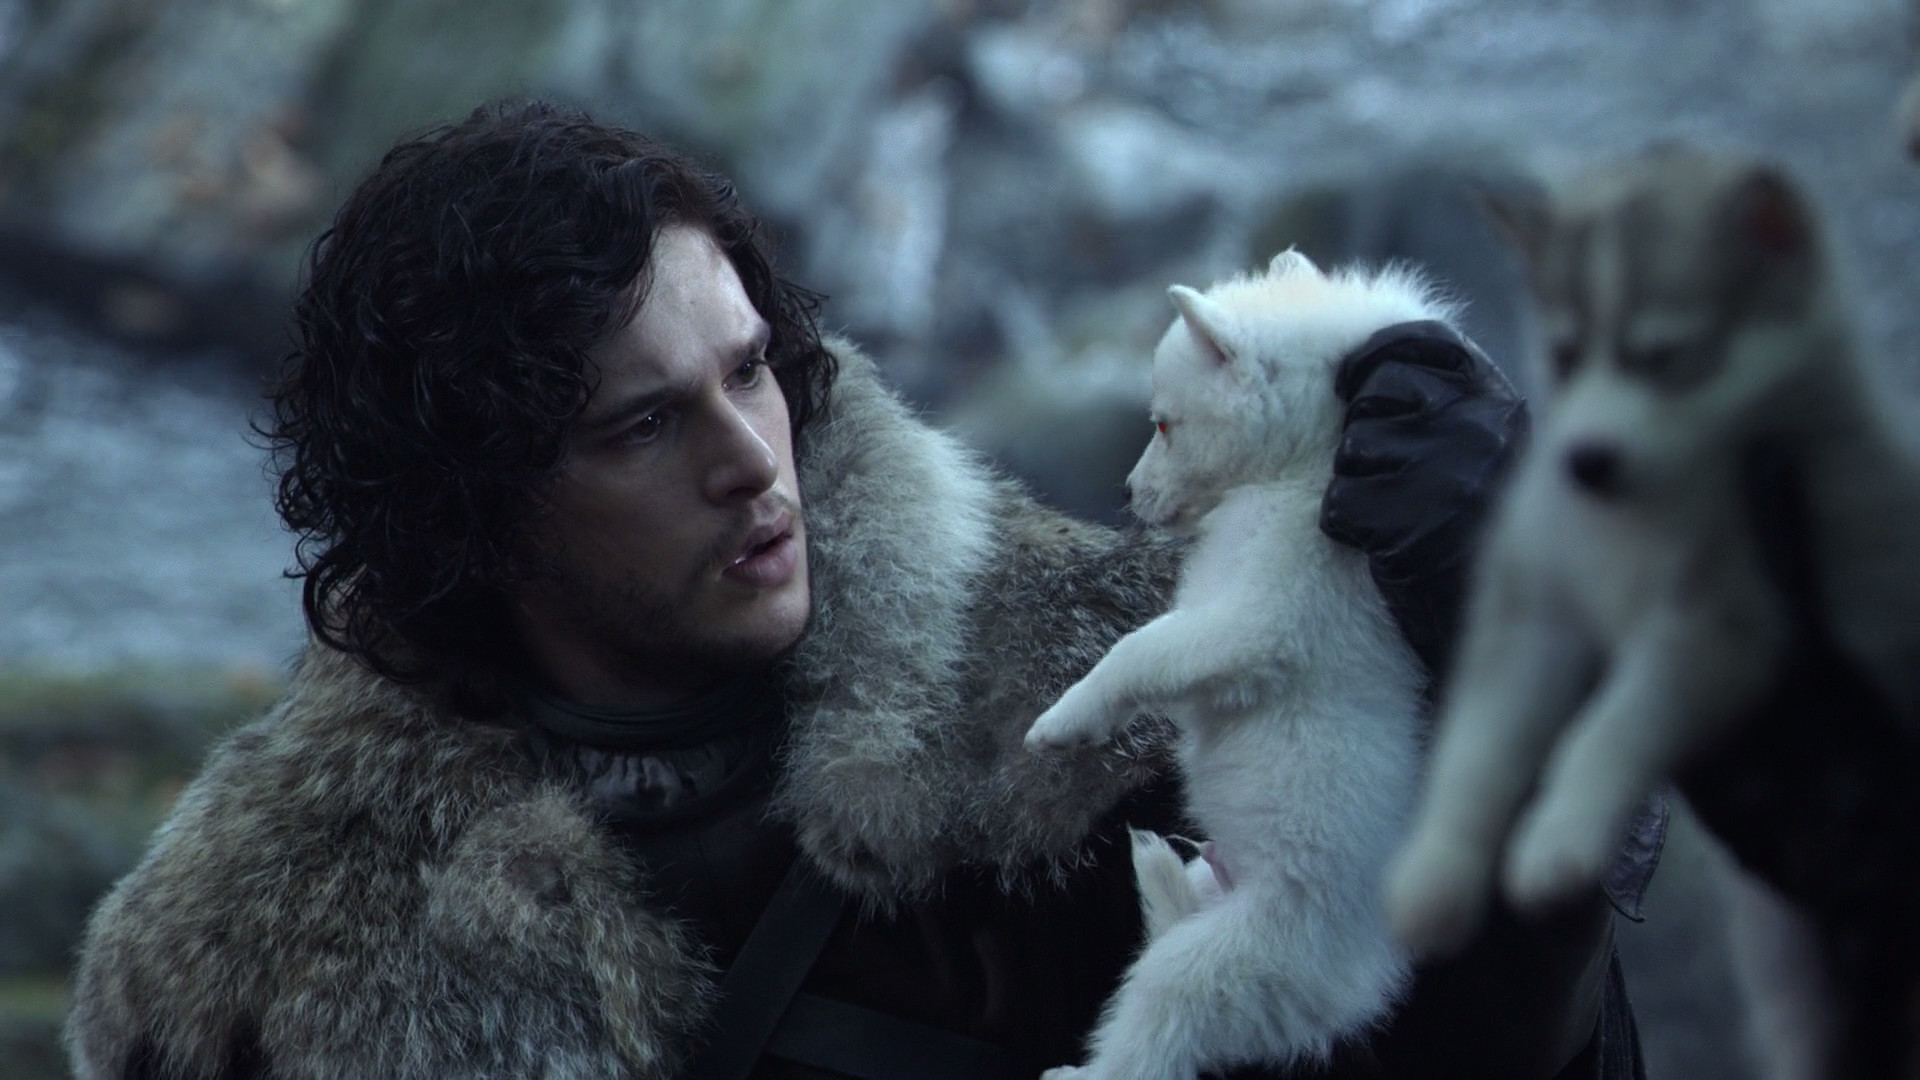 1920x1080 Jon Snow finds Ghost as a pup.